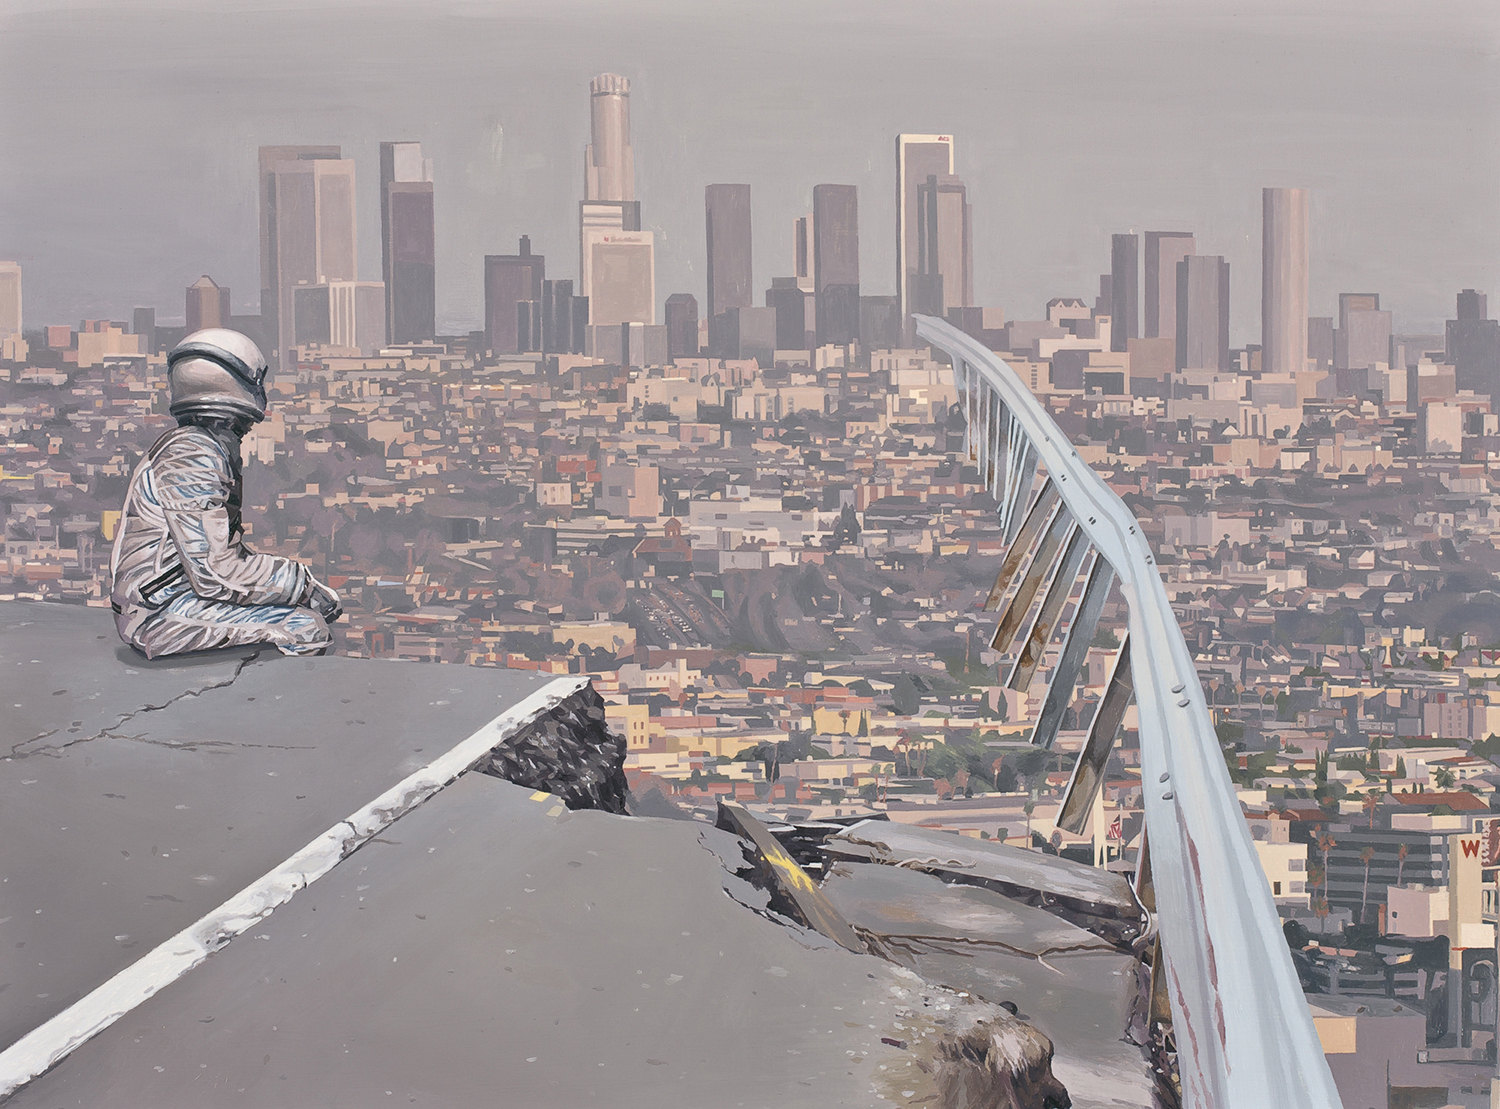 lost highway, astronaut overlooking the smoggy city, painting